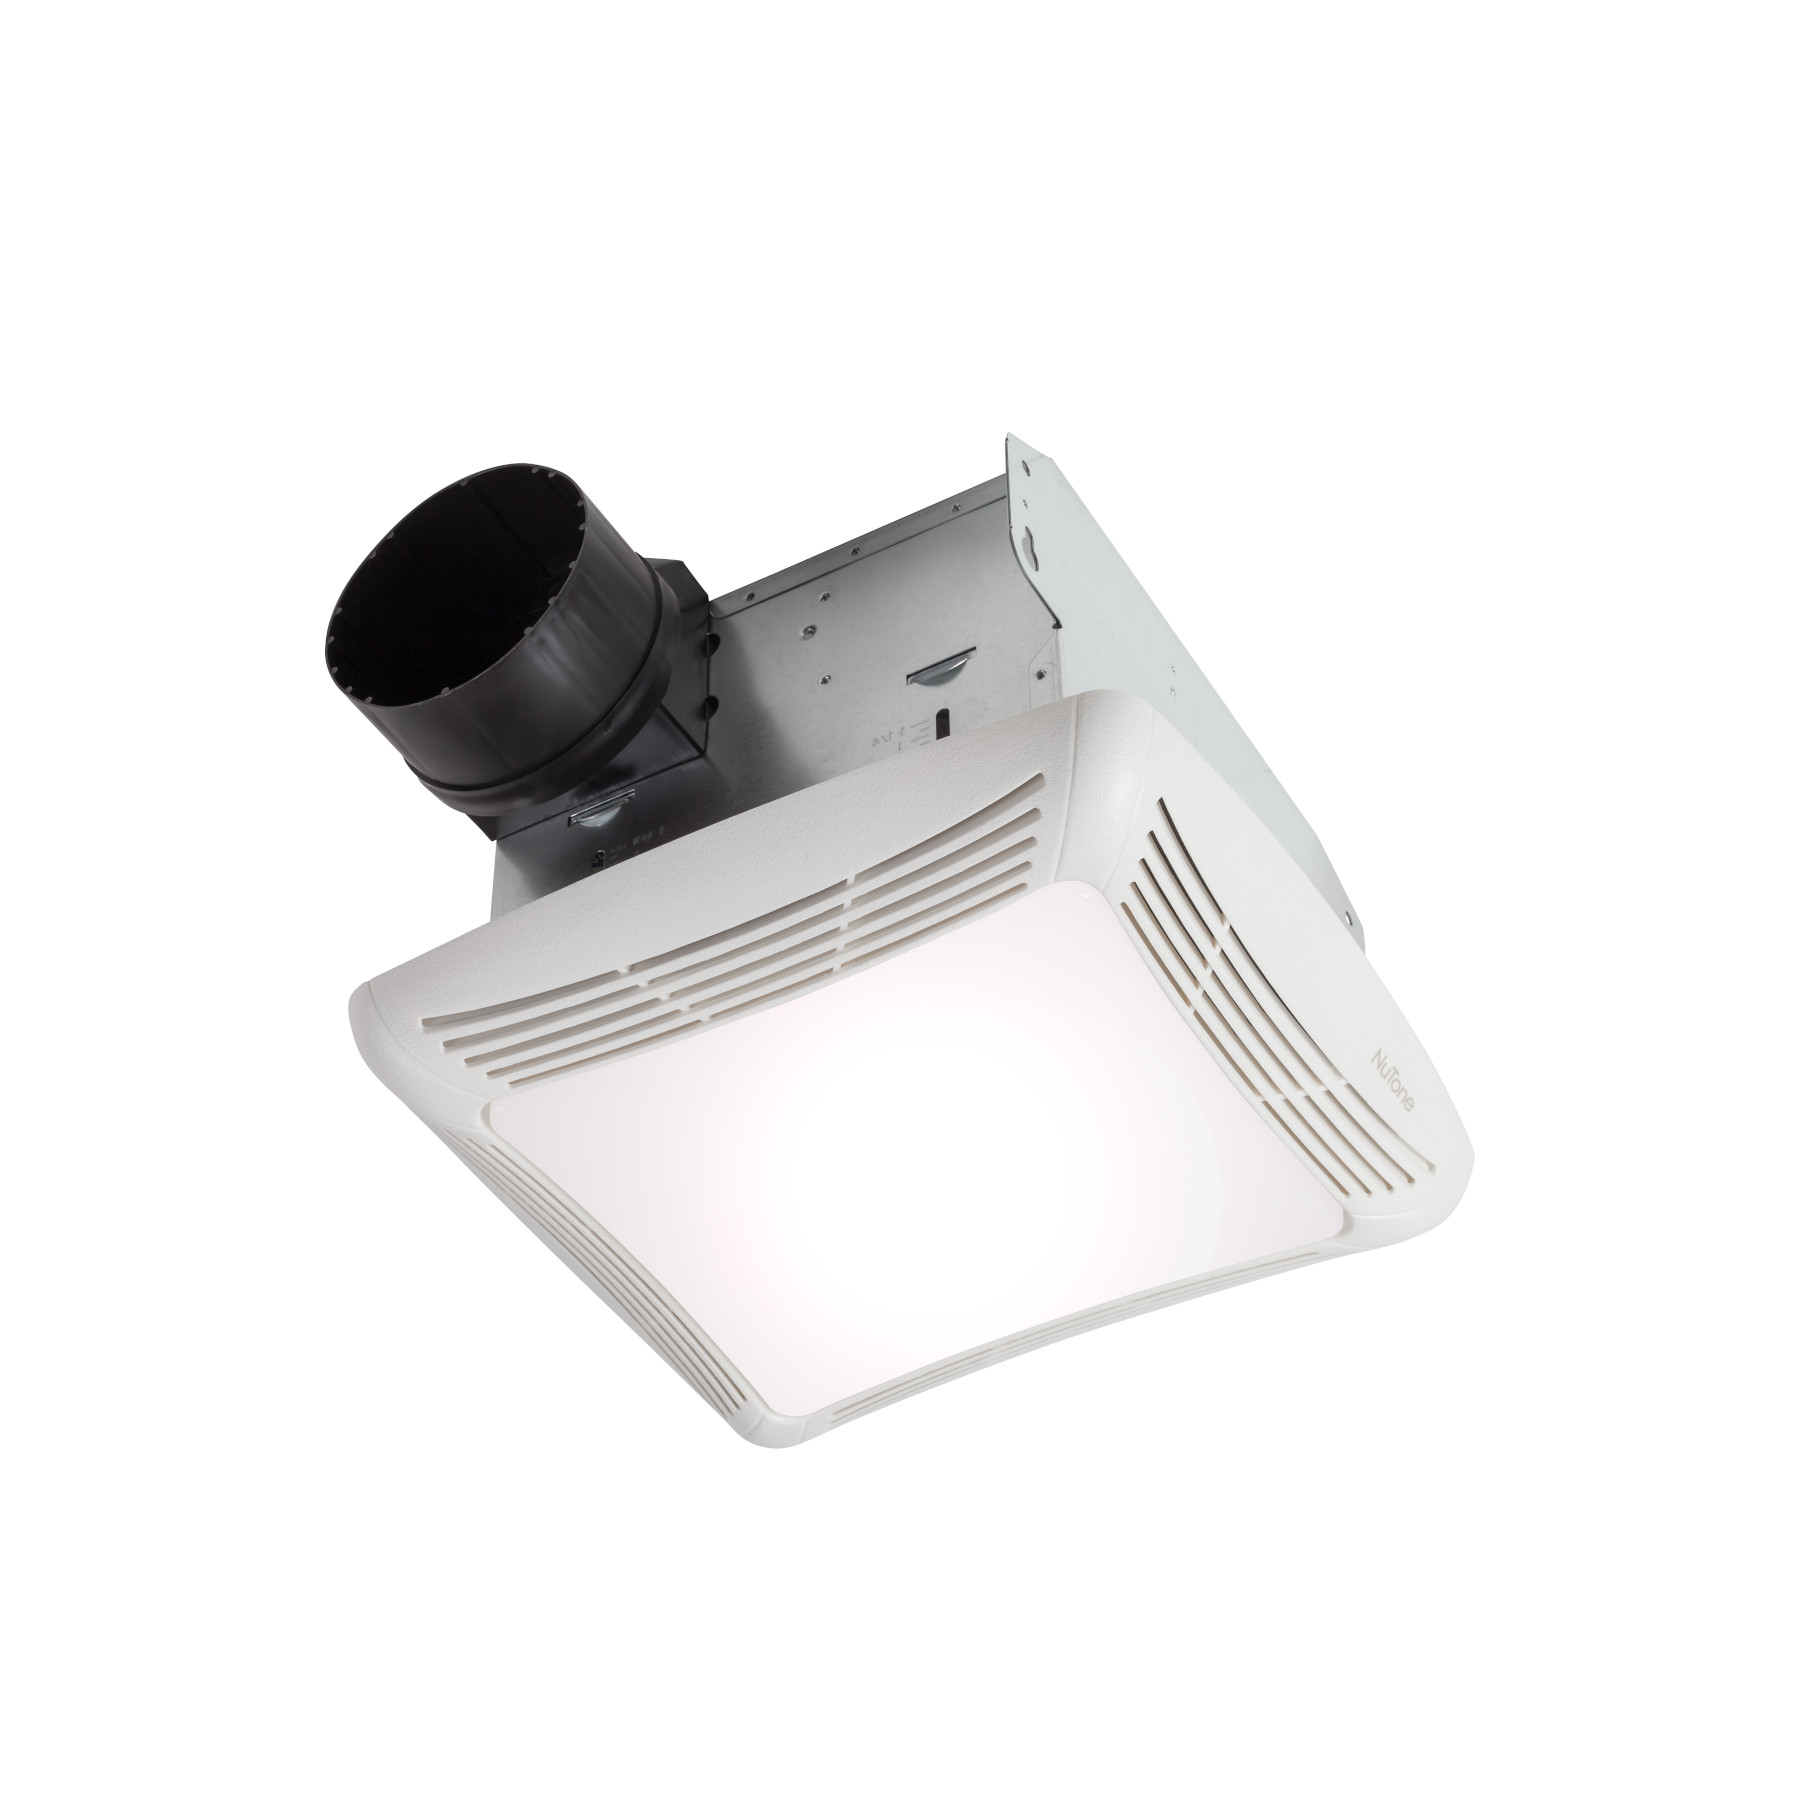 Broan InVent Series Single-Speed Fan with LED Light ENERGY STAR Certified Ceiling Room-Side Installation Bathroom Exhaust Fan 110 CFM 1.5 Sones